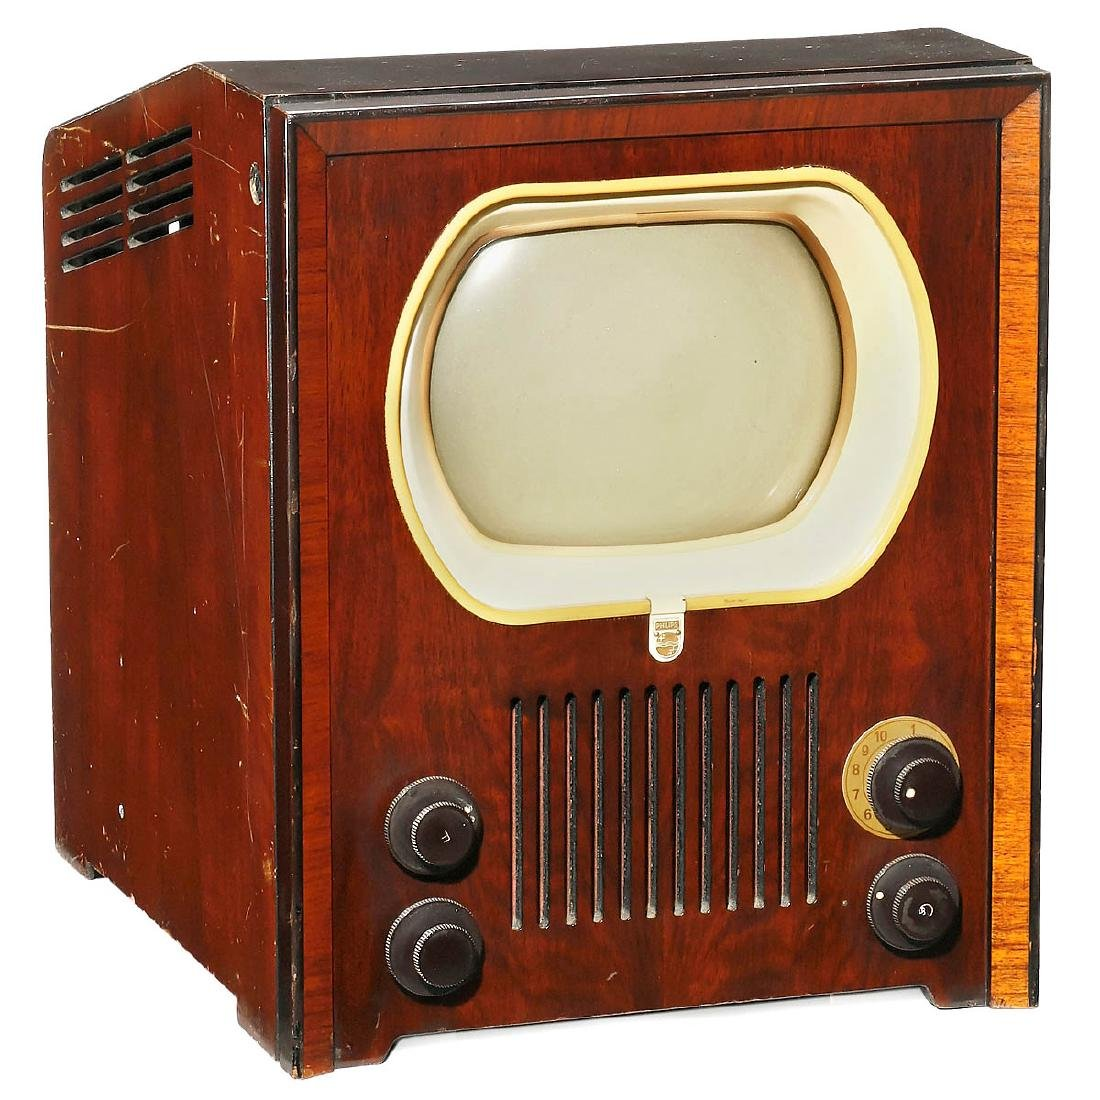 philips tx400u tv receiver, 1951 may 20, 2017 auction team